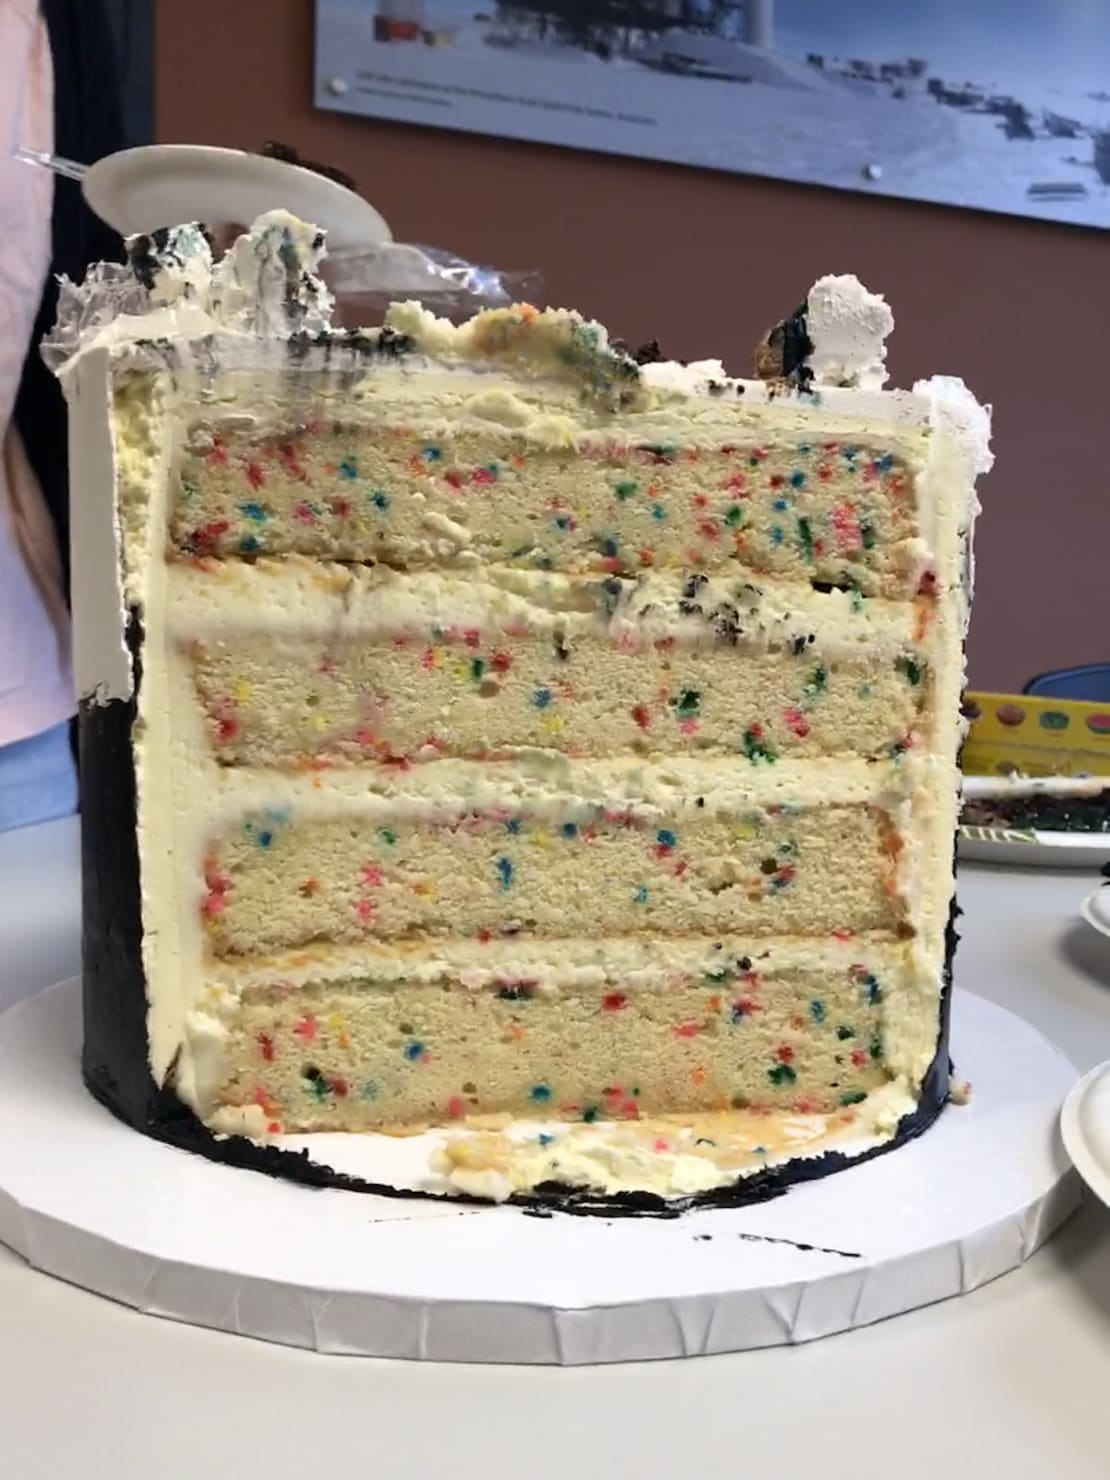 The bottom tier is funfetti cake (aka vanilla with rainbow sprinkles) with cream cheese frosting.